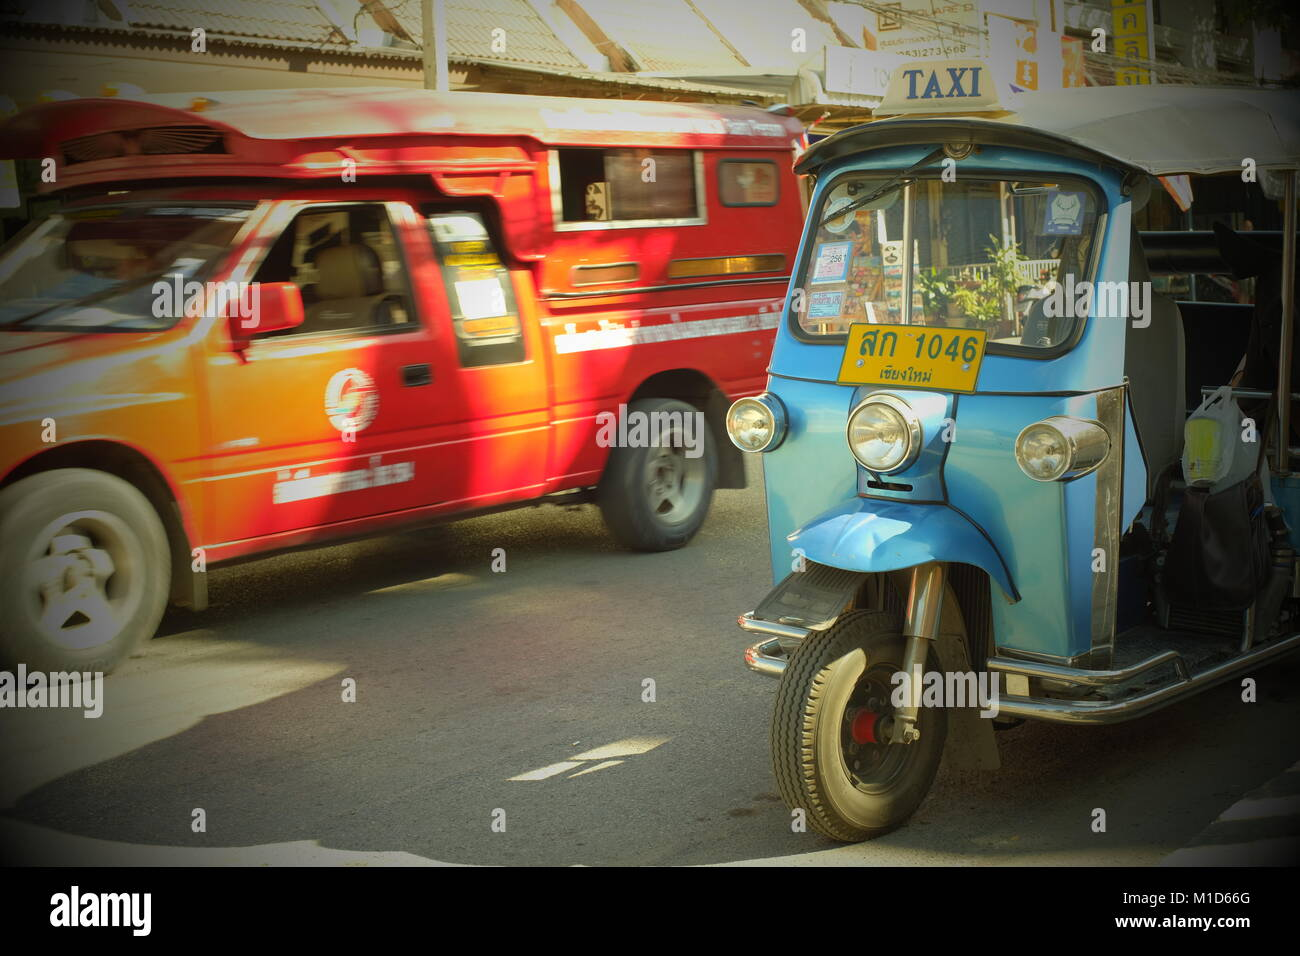 A blue tuk-tuk and a red songthaew taxi in Chiang Mai, Thailand. 24-Jan-2018 - Stock Image